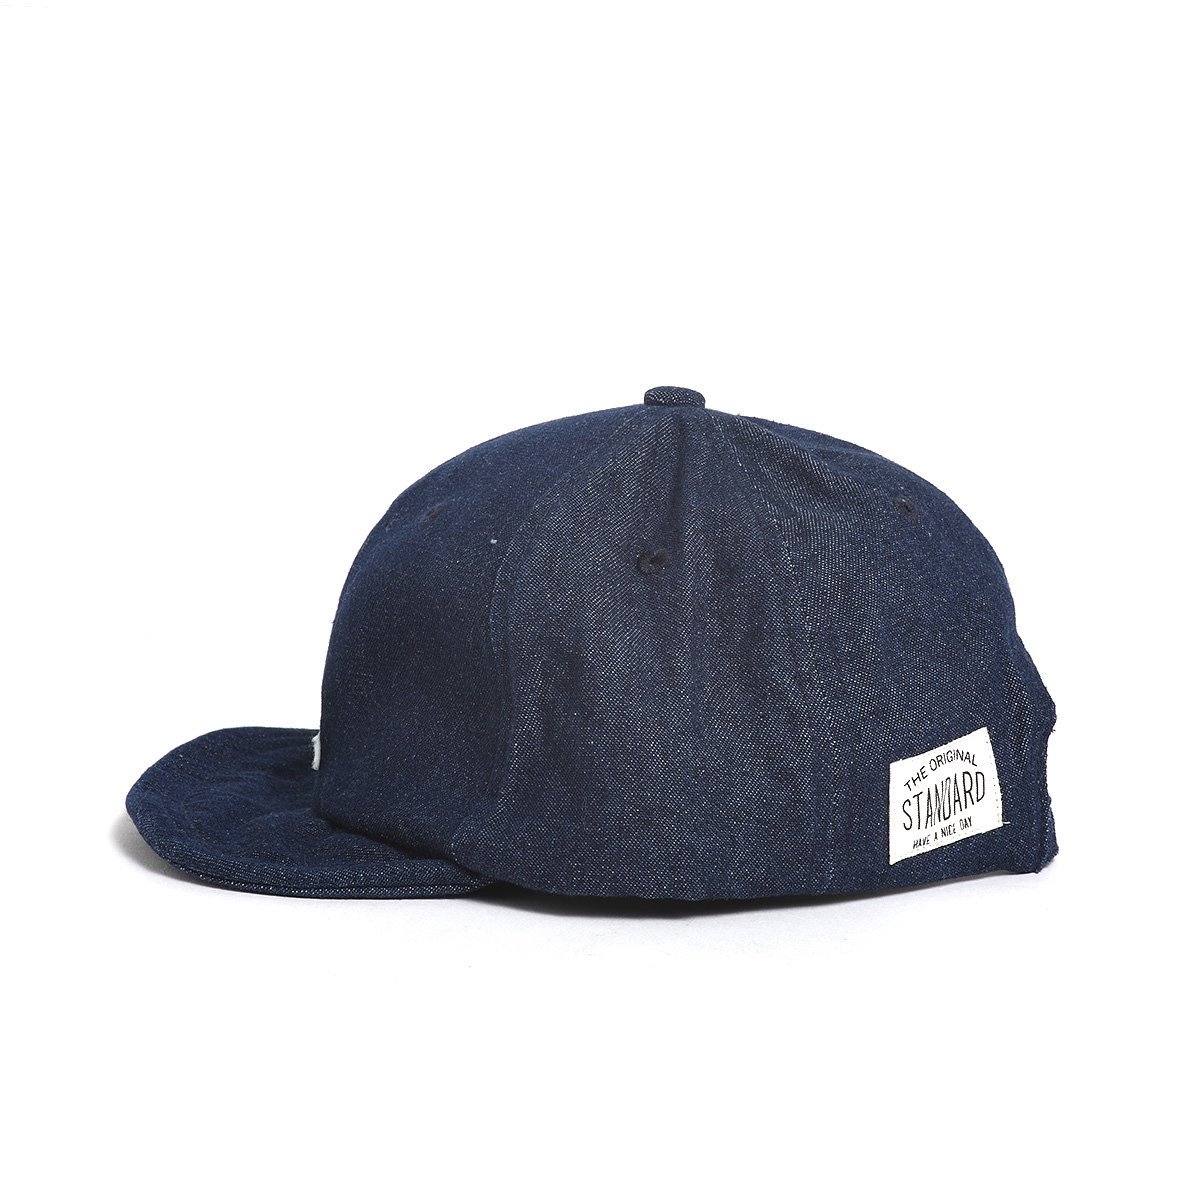 AtoZ Denim Logo CAP 詳細画像2